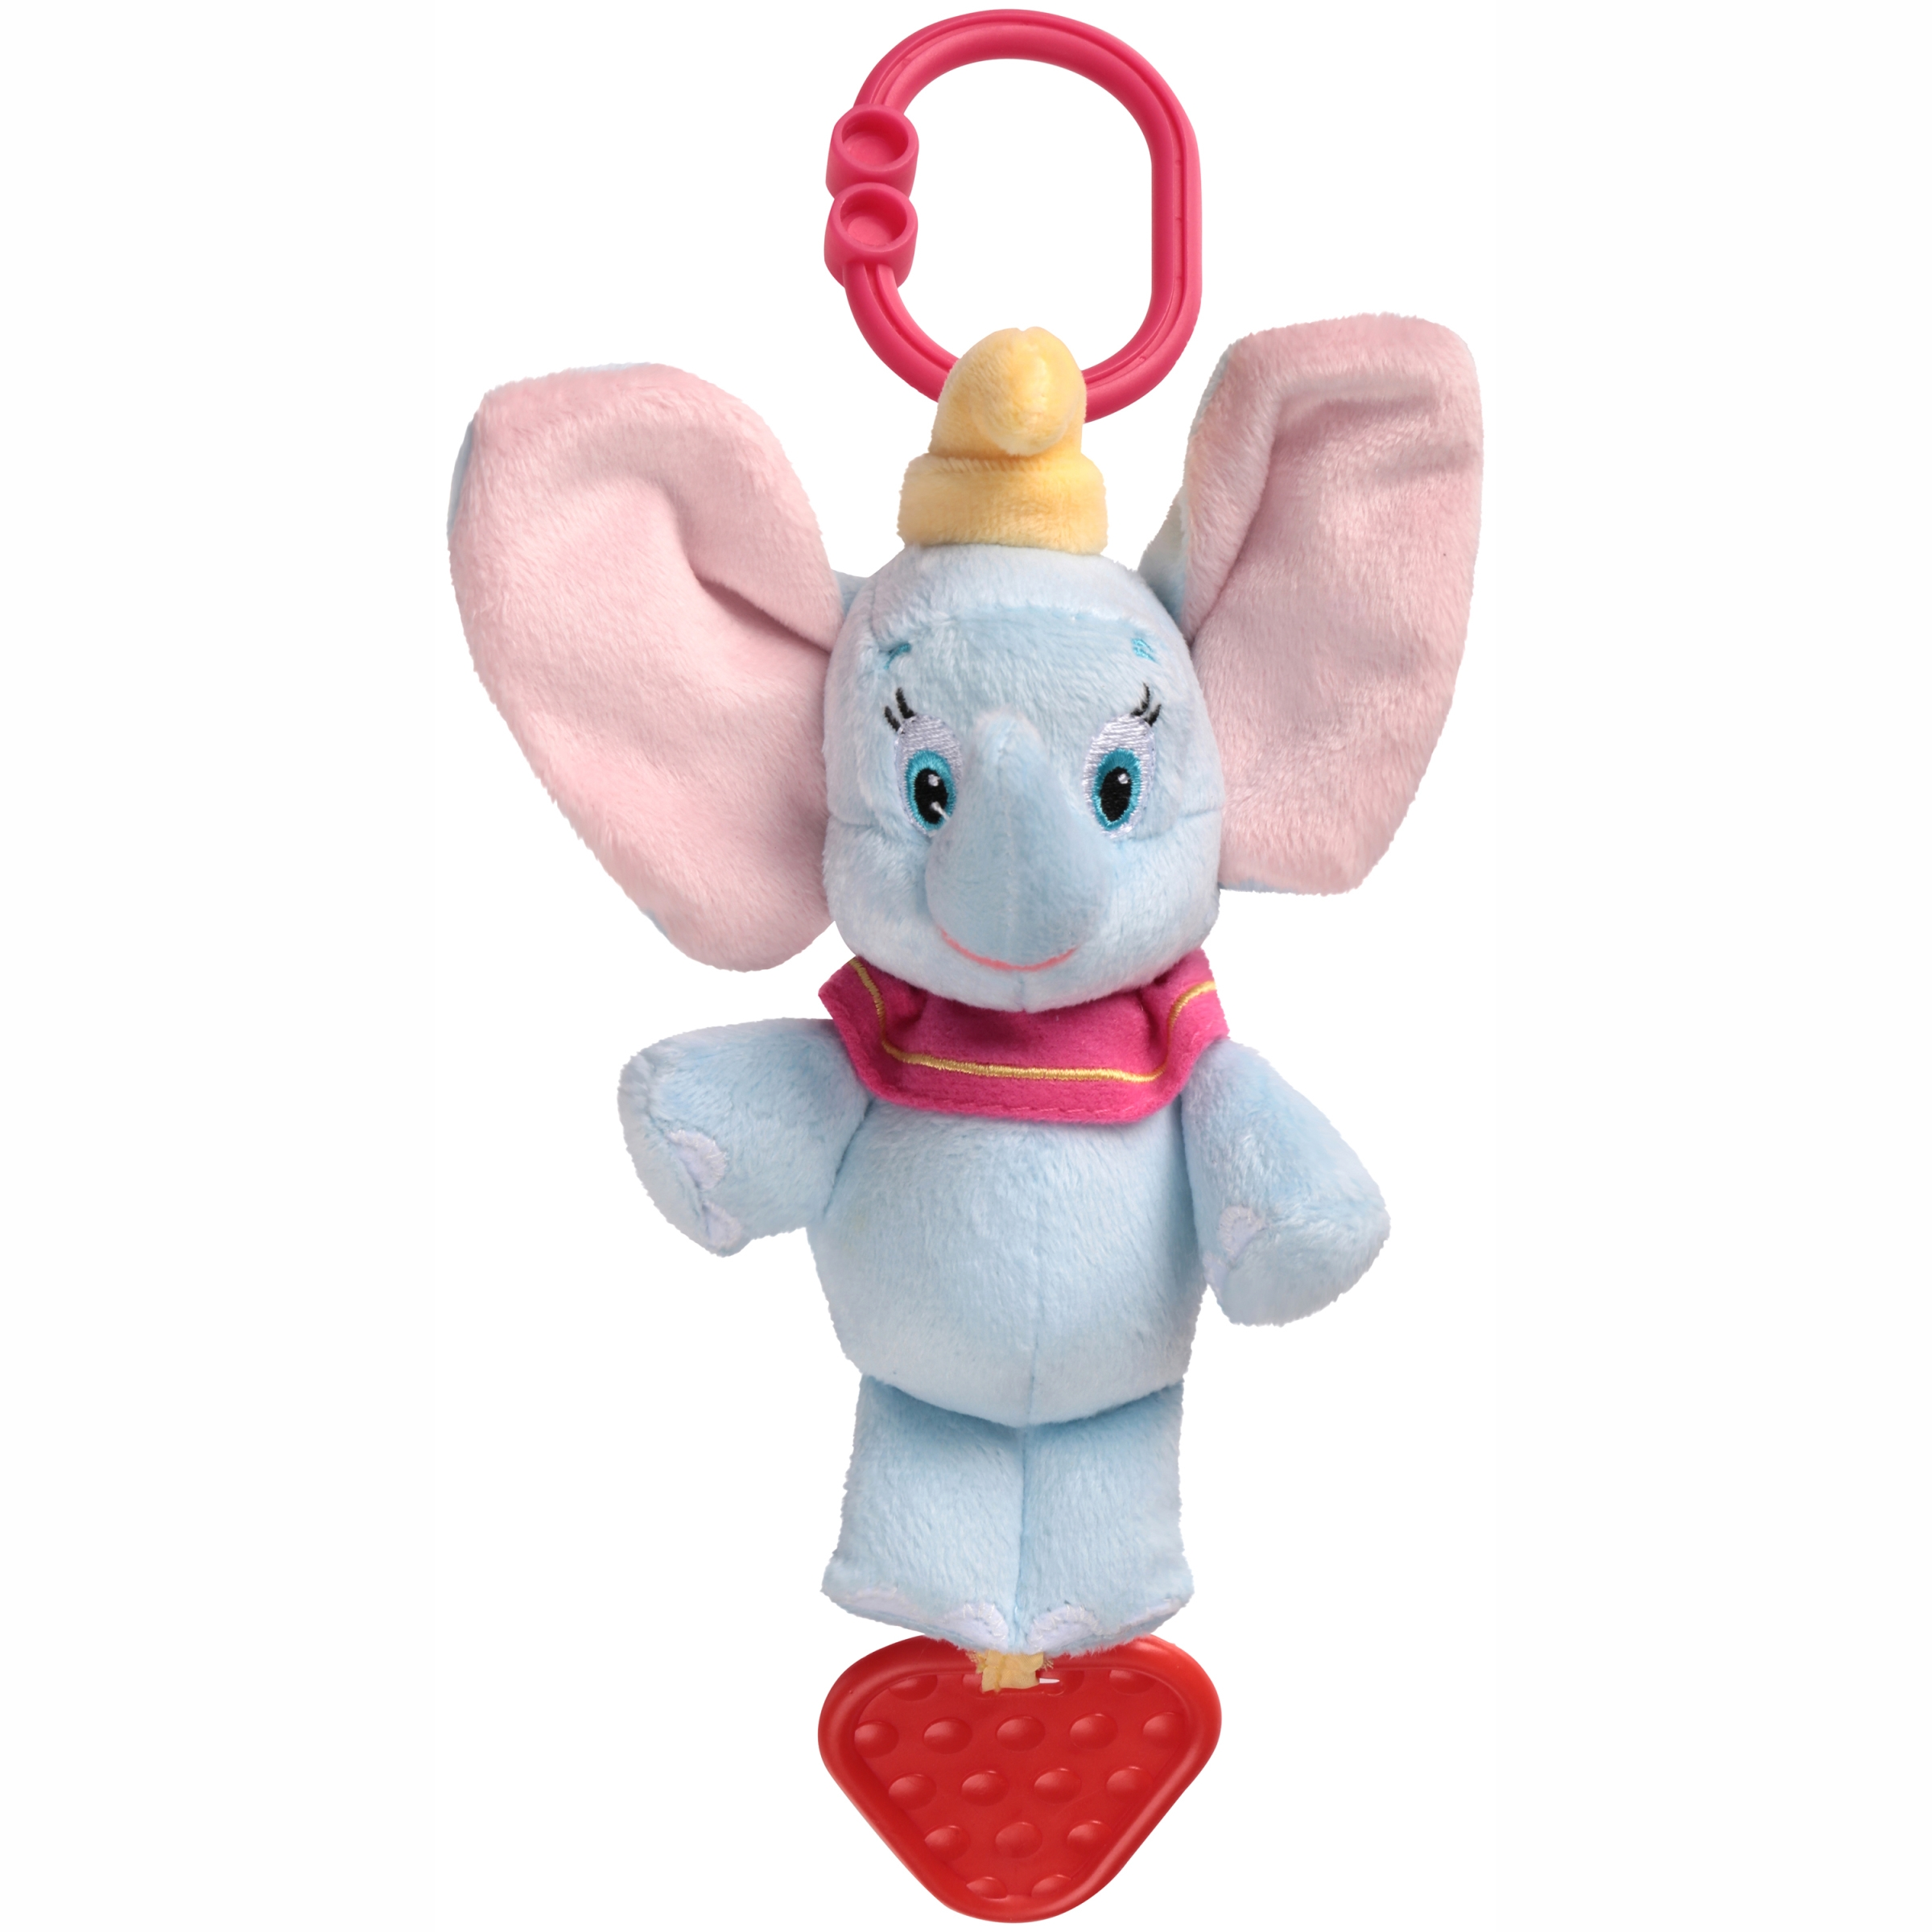 Disney Baby Dumbo the Elephant Baby Toy